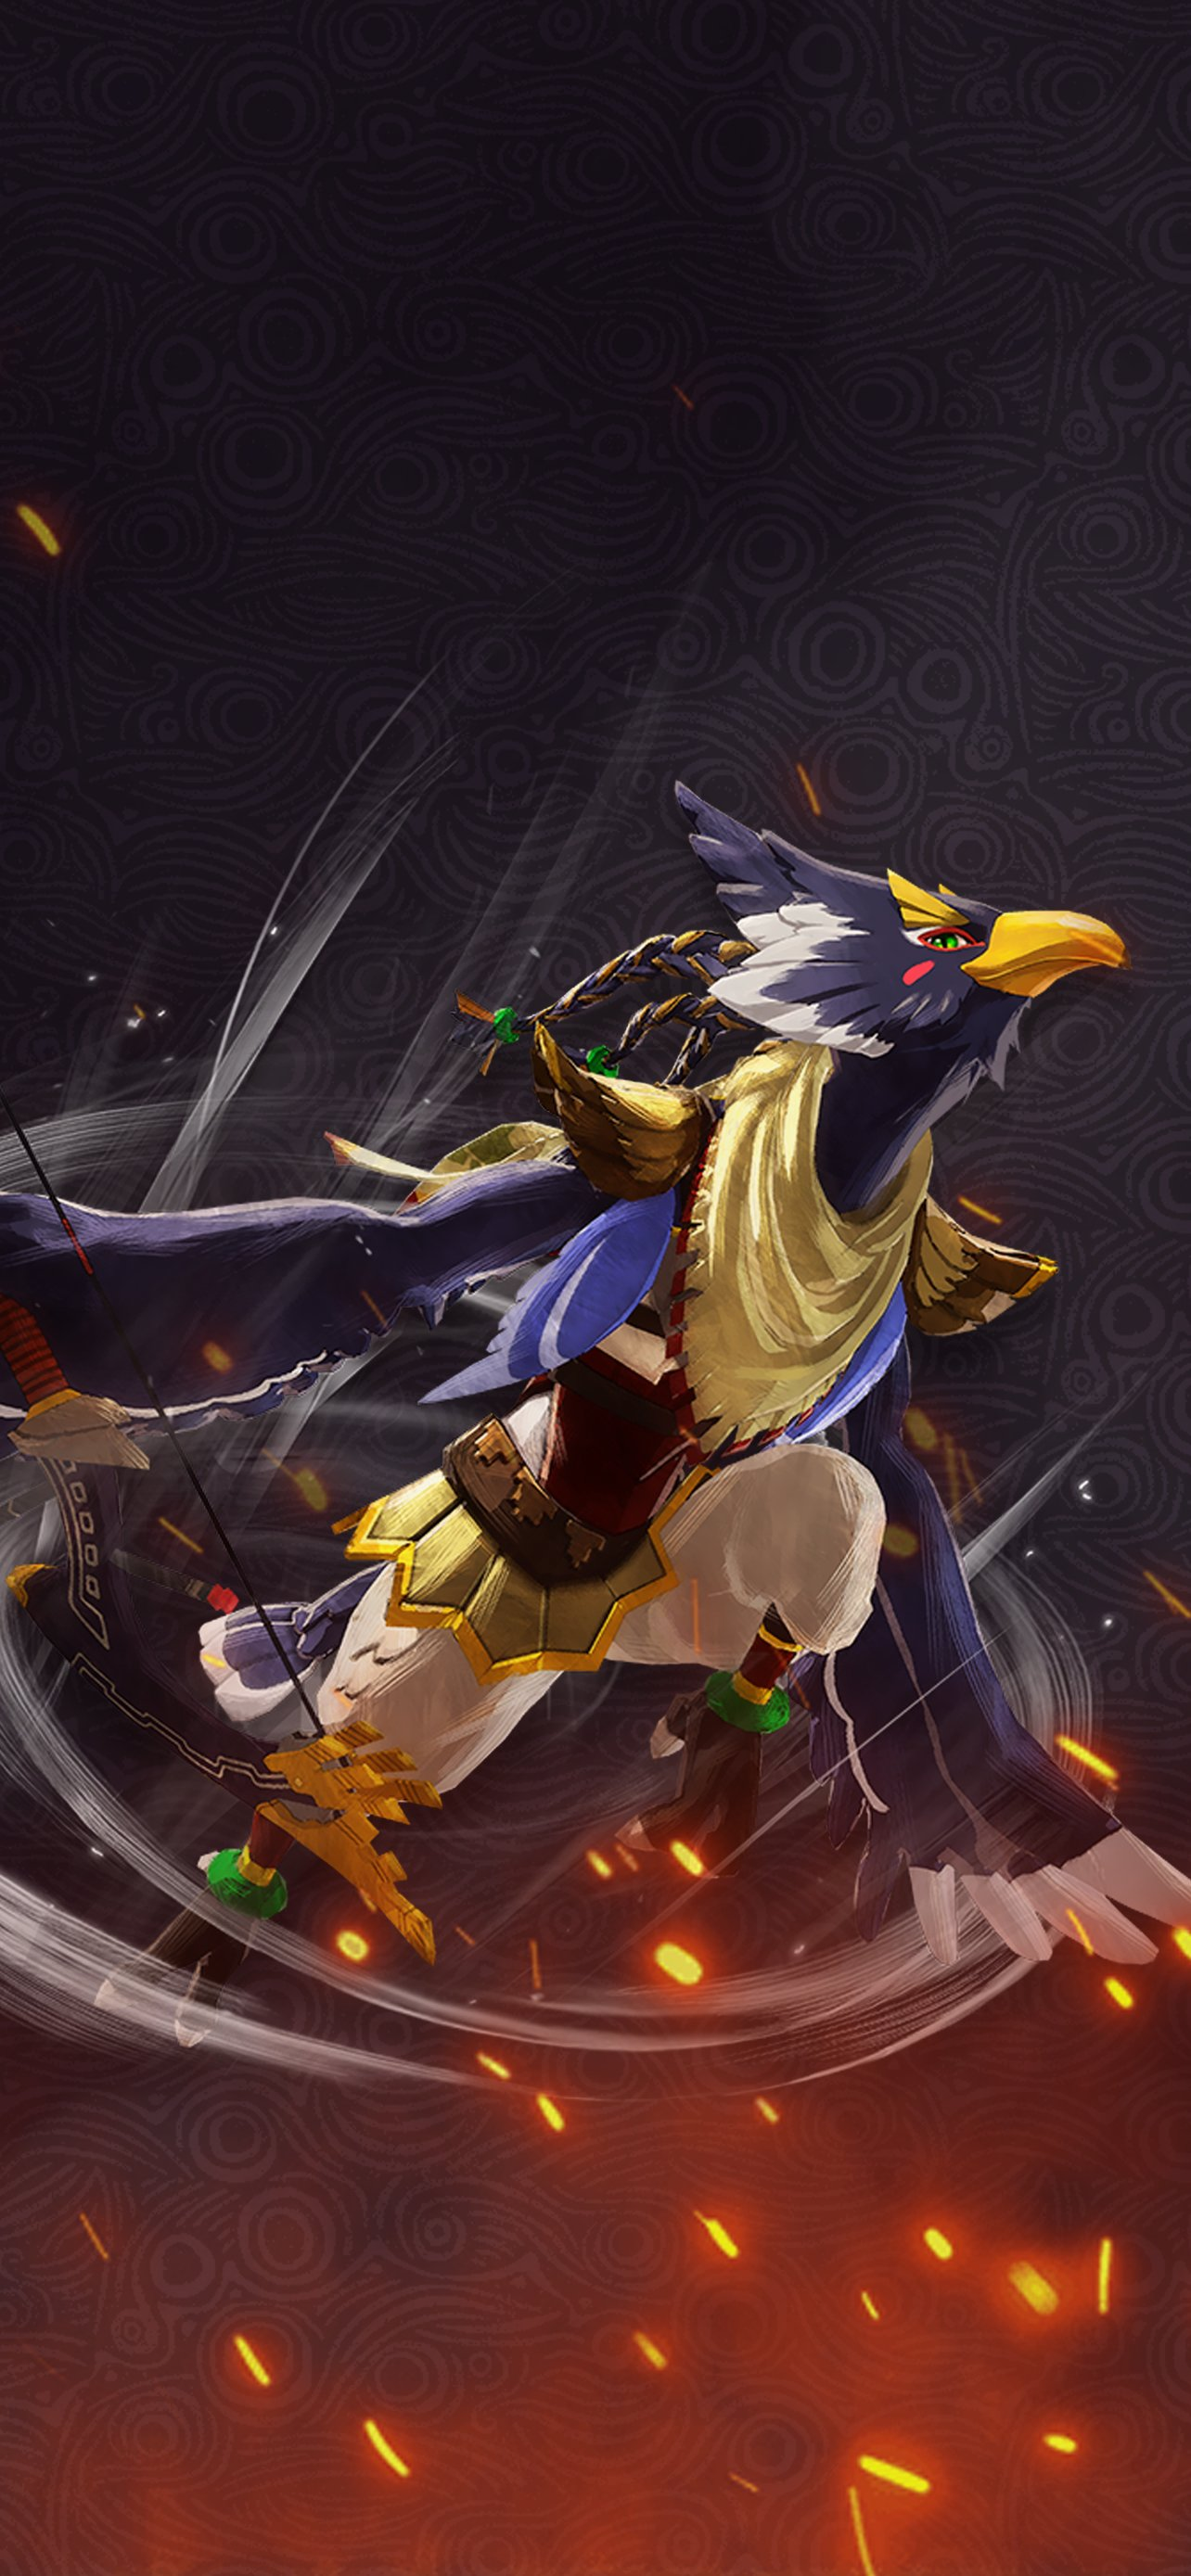 hyrulewarriors ac revali 01 1284x2778 Cat with Monocle 1284x2778